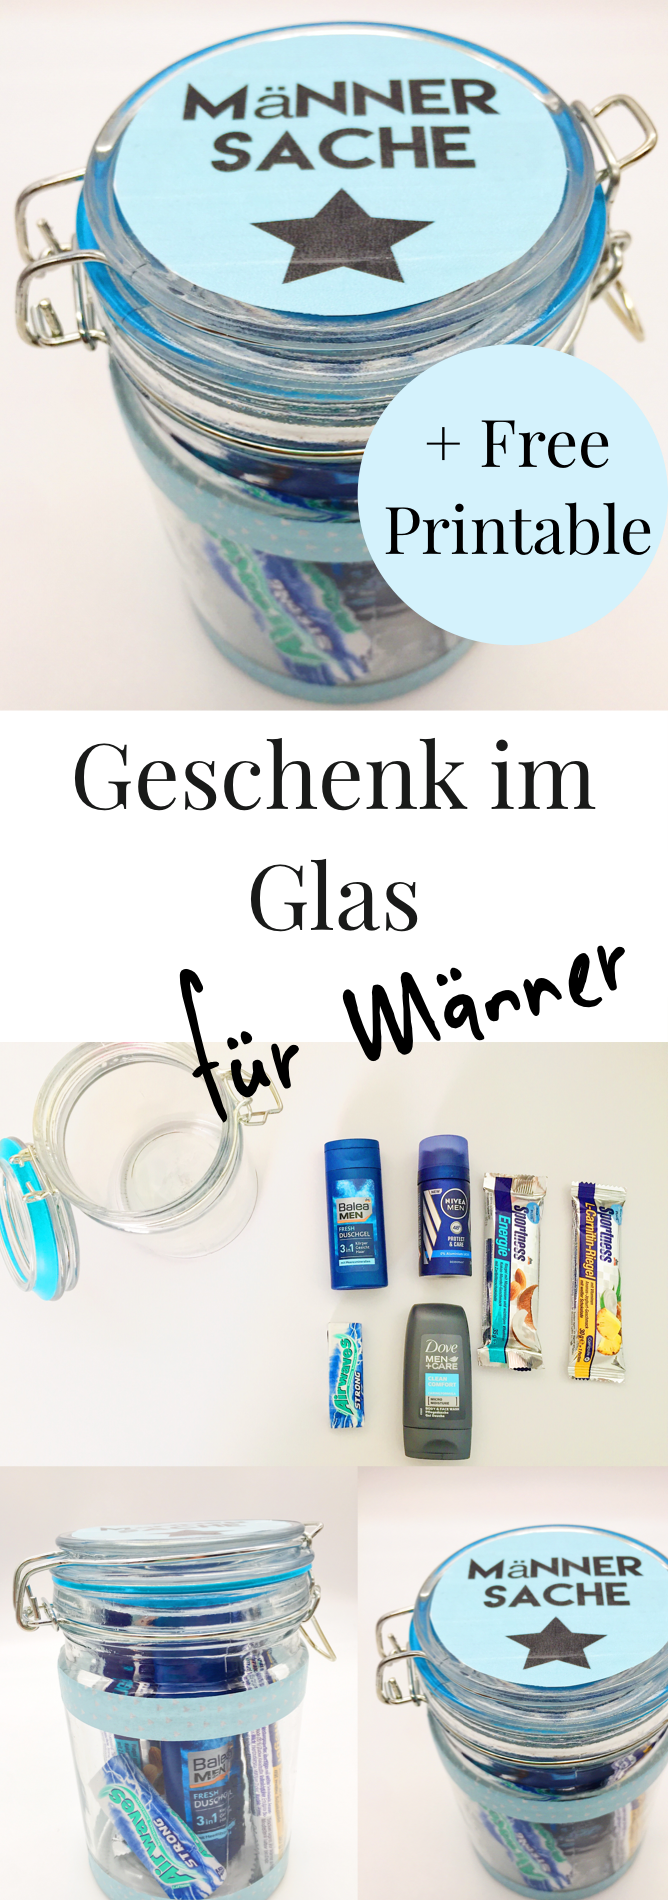 diy geschenke im glas selber machen happy dings diy tipps pinterest mann geschenke. Black Bedroom Furniture Sets. Home Design Ideas